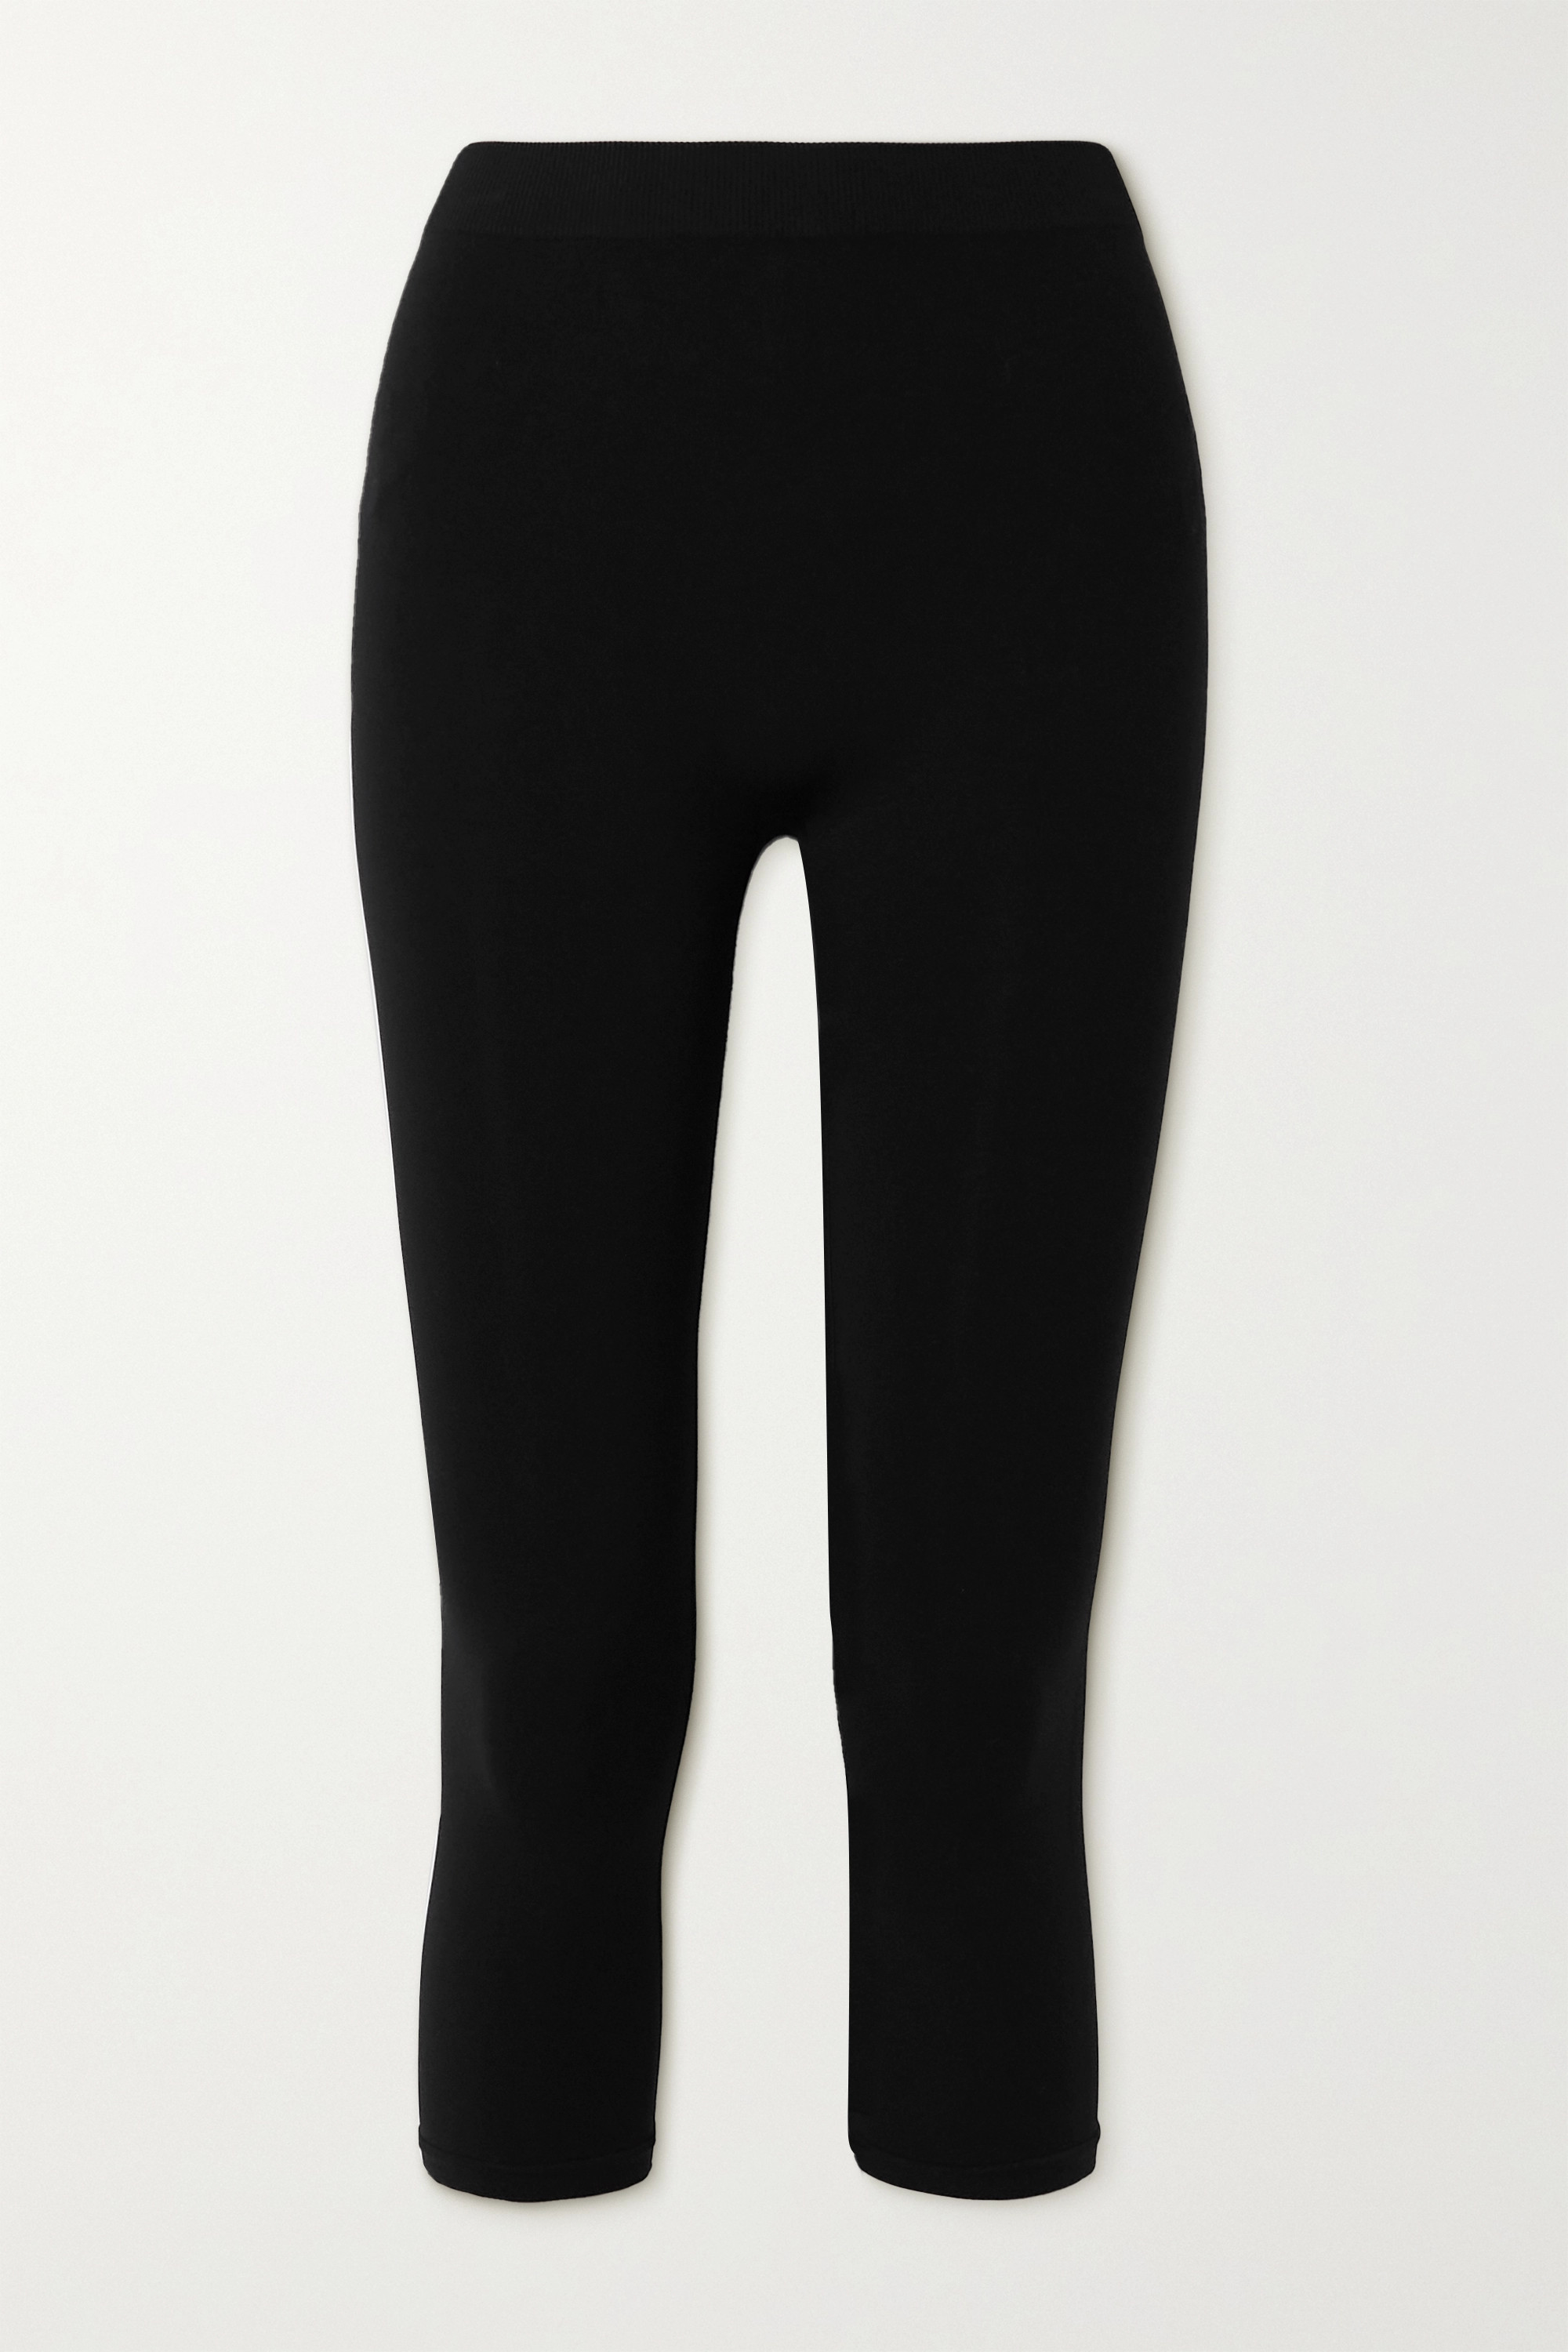 Helmut Lang Cropped stretch-jersey leggings